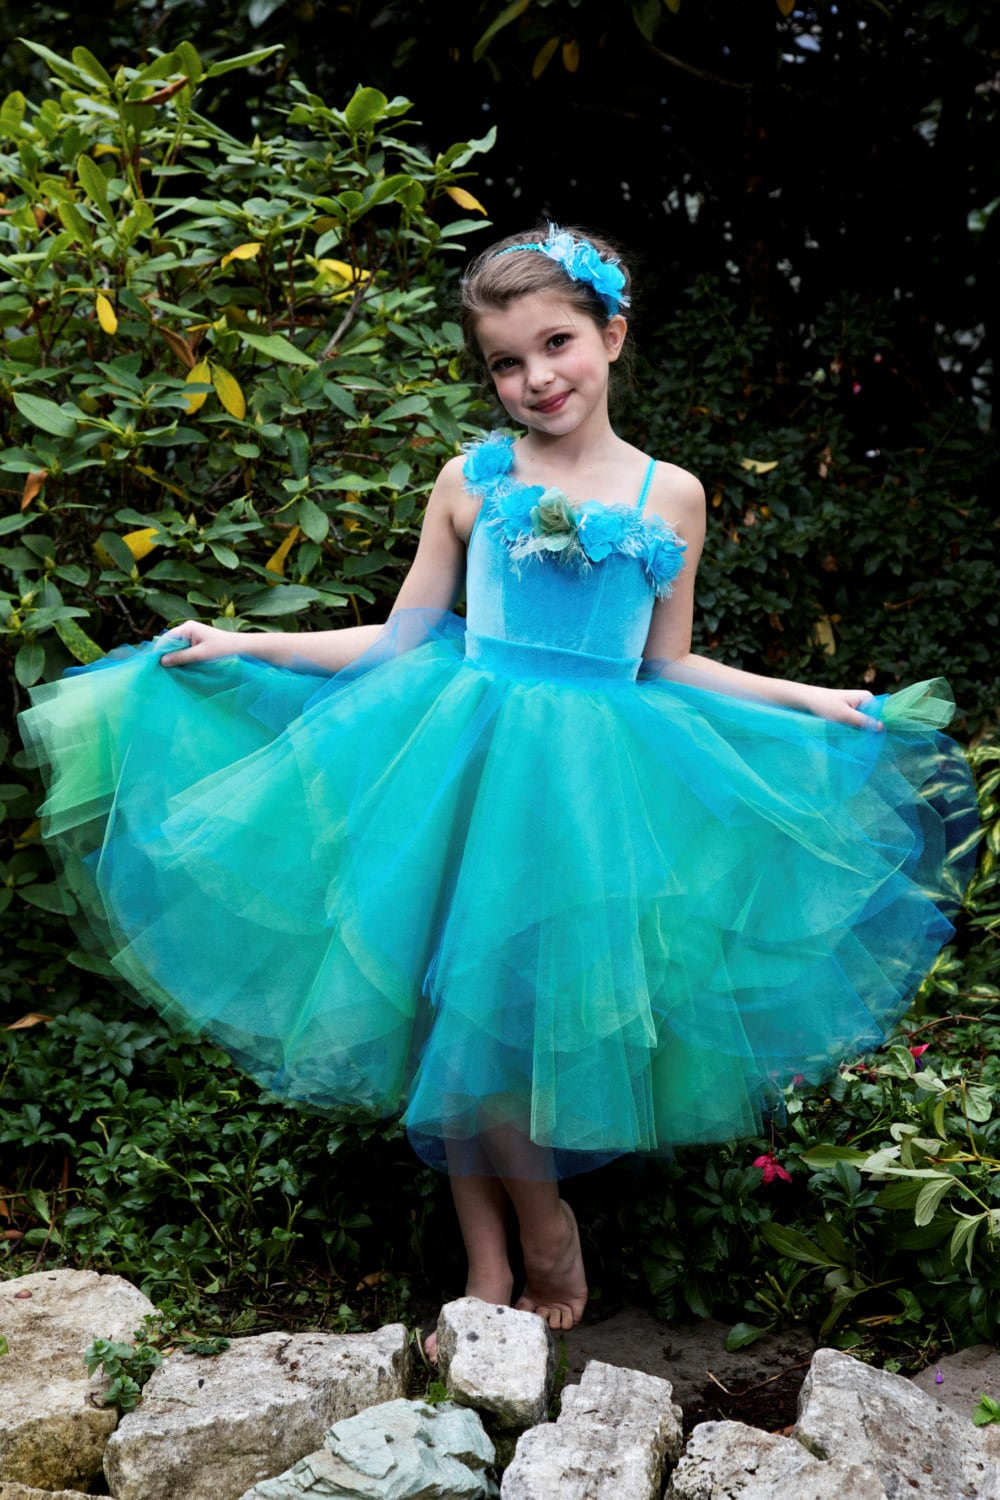 Silvermist Fairy Tutu Dress Costume